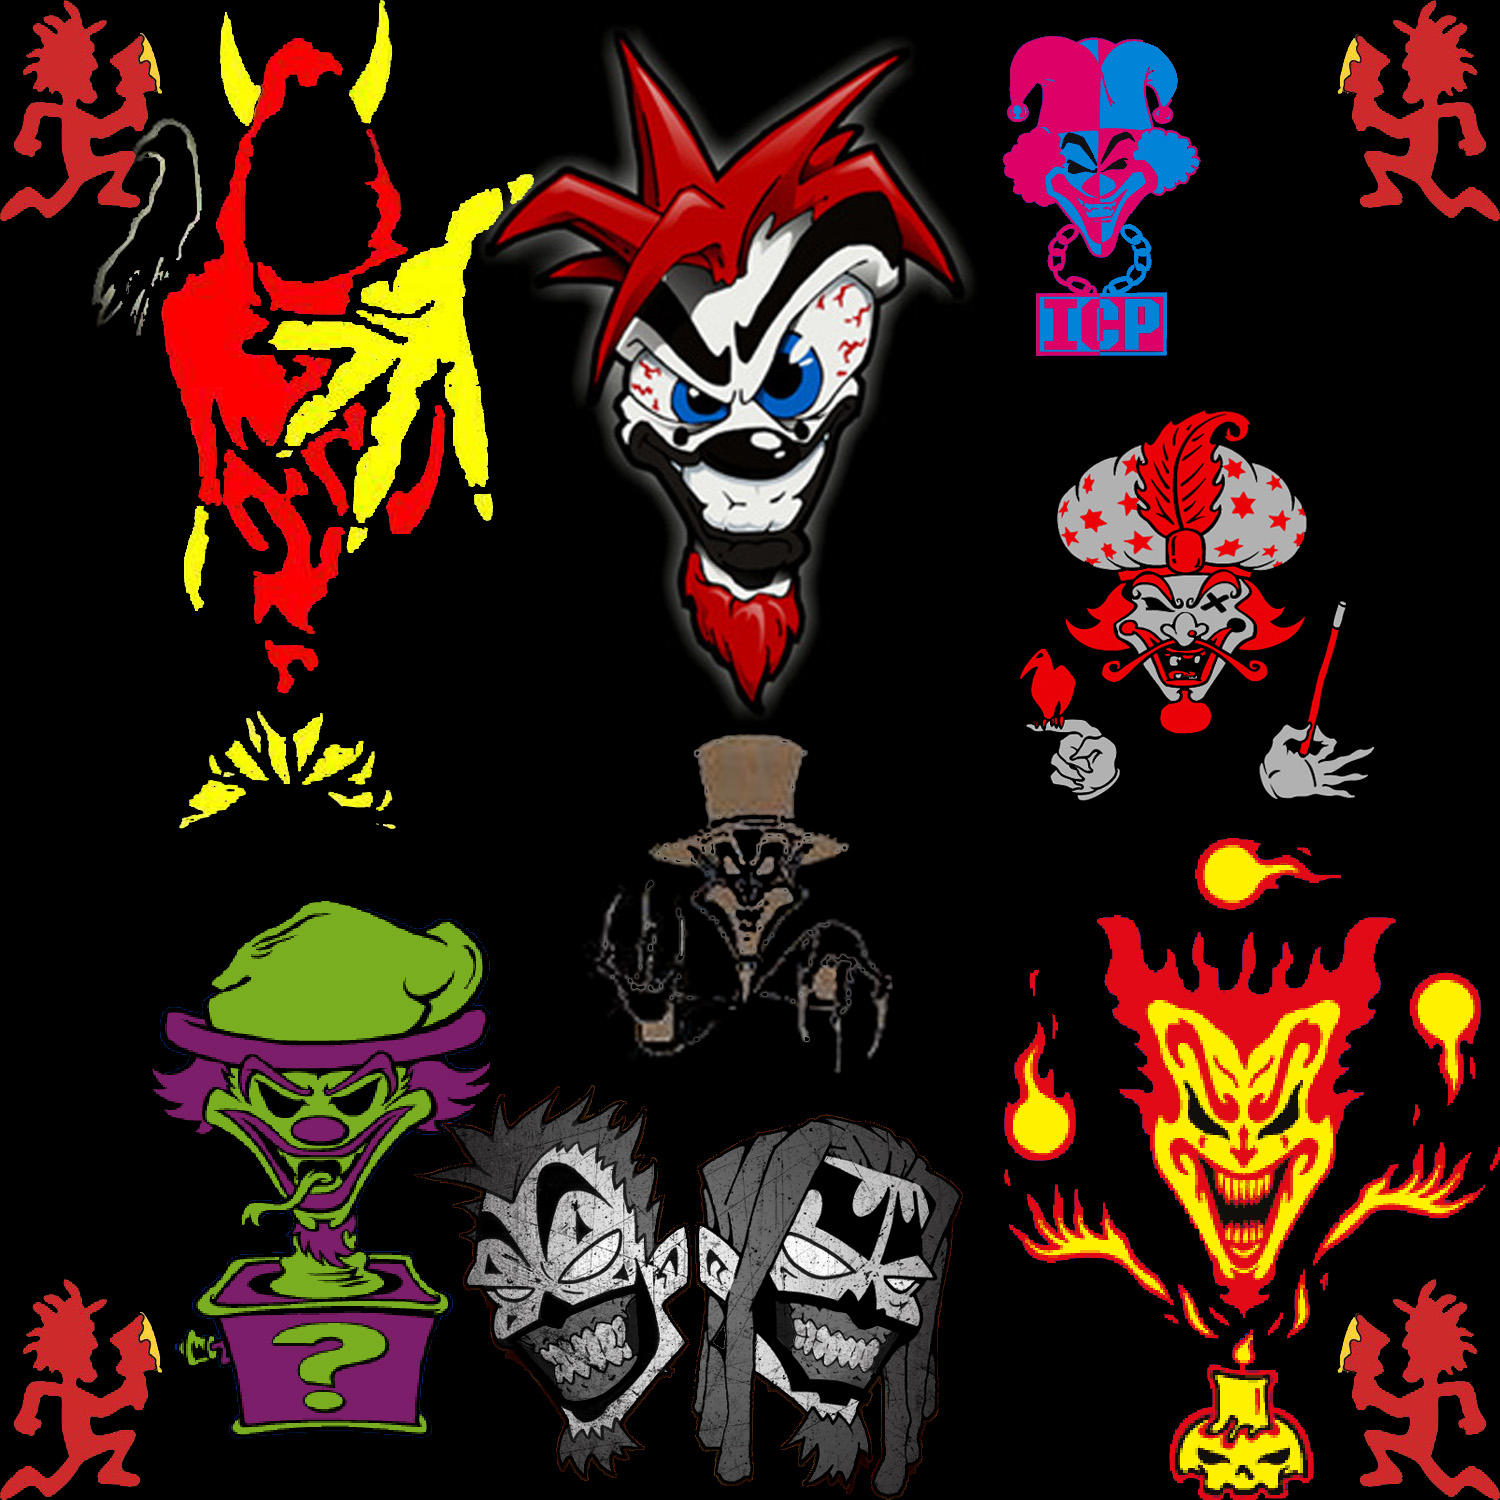 icp by liloshi82190 on deviantart